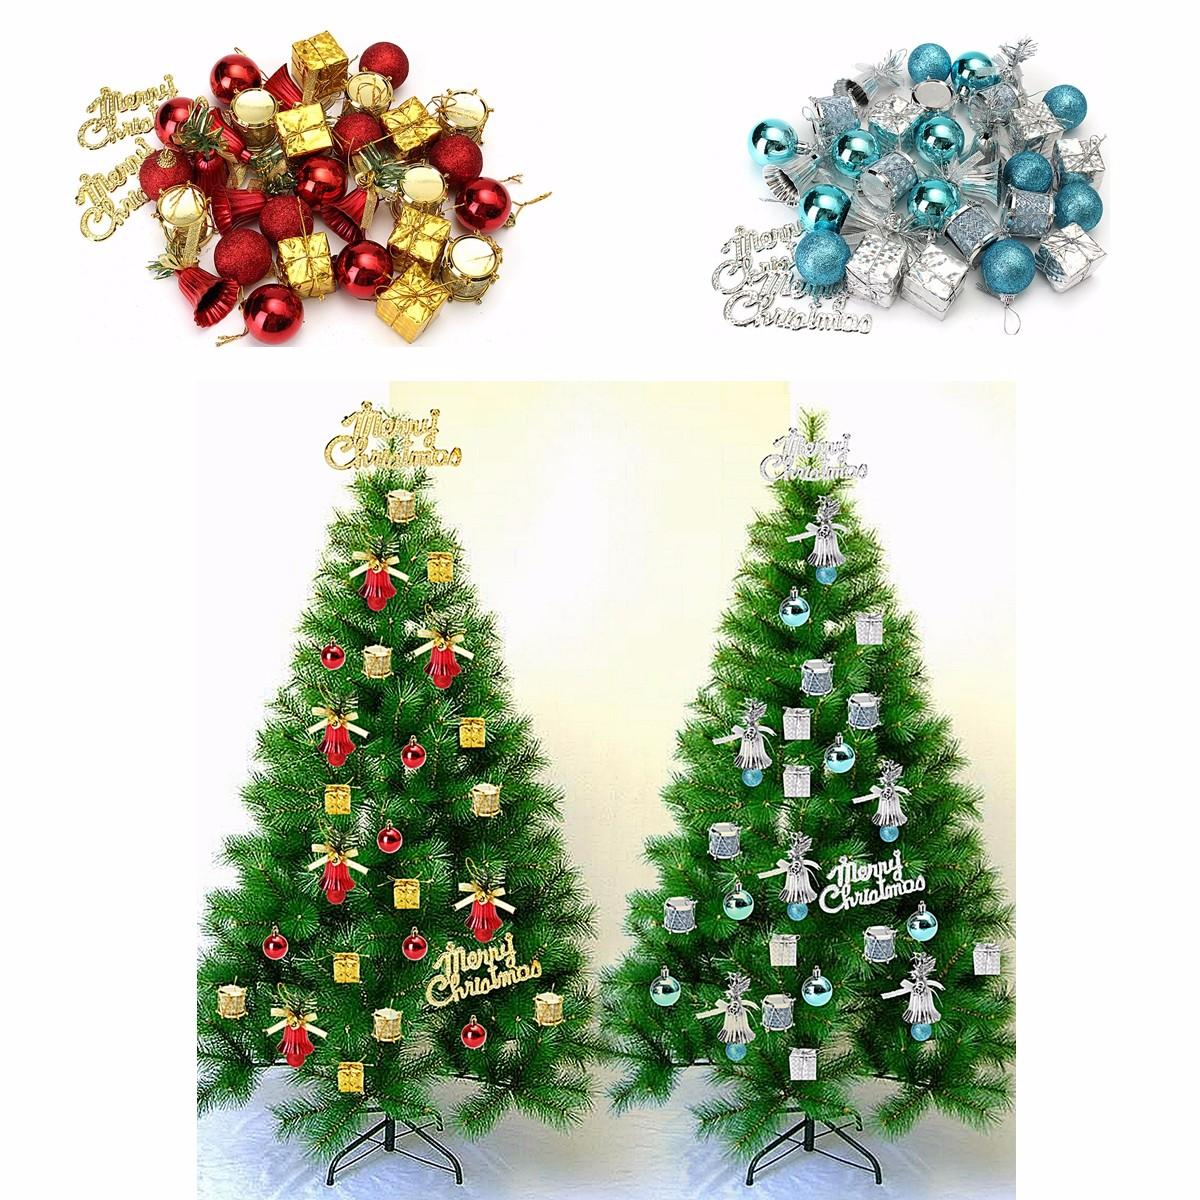 32pcs Christmas Ornaments Balls Drums Baubles Xmas Tree Pendant Home